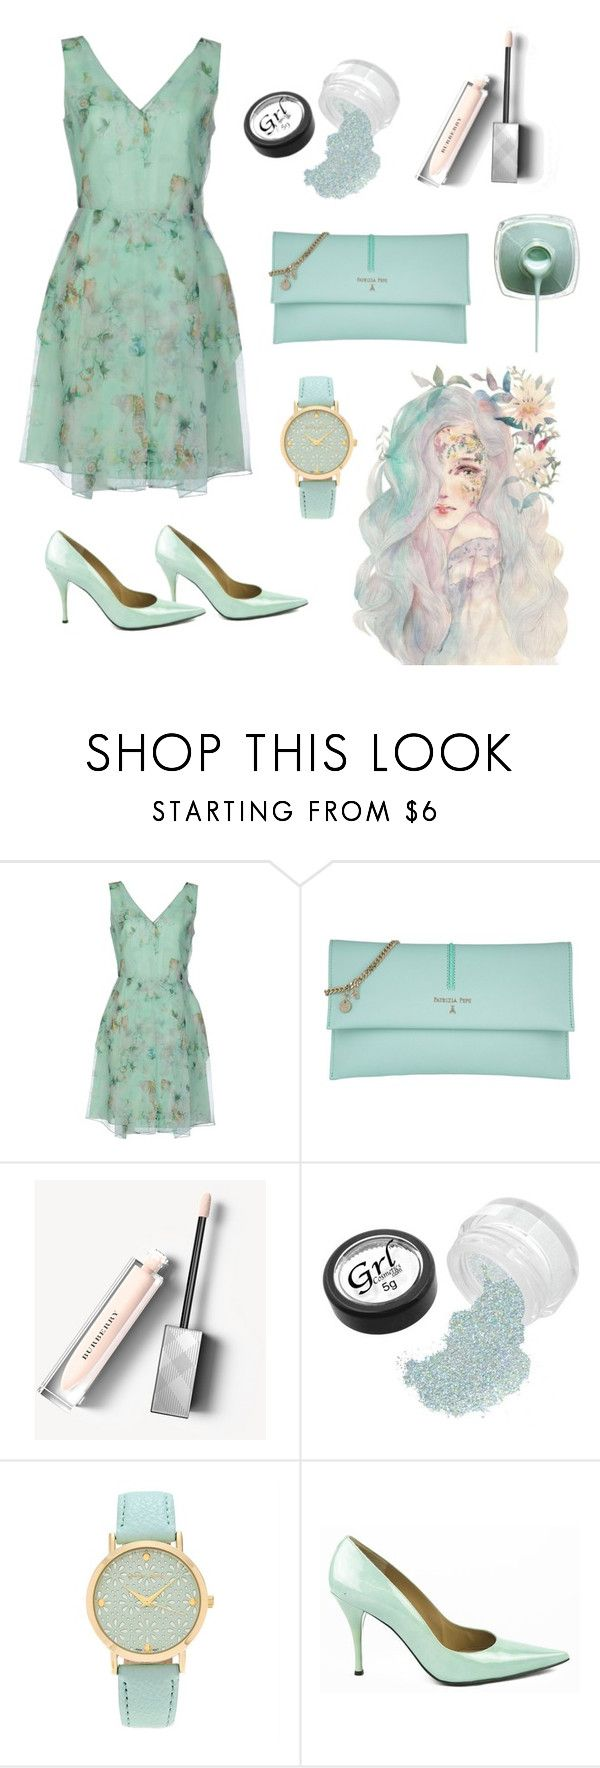 """""""Untitled 73"""" by jaelclarice ❤ liked on Polyvore featuring Philosophy di Alberta Ferretti, Patrizia Pepe, Burberry, Journee Collection and Stuart Weitzman"""